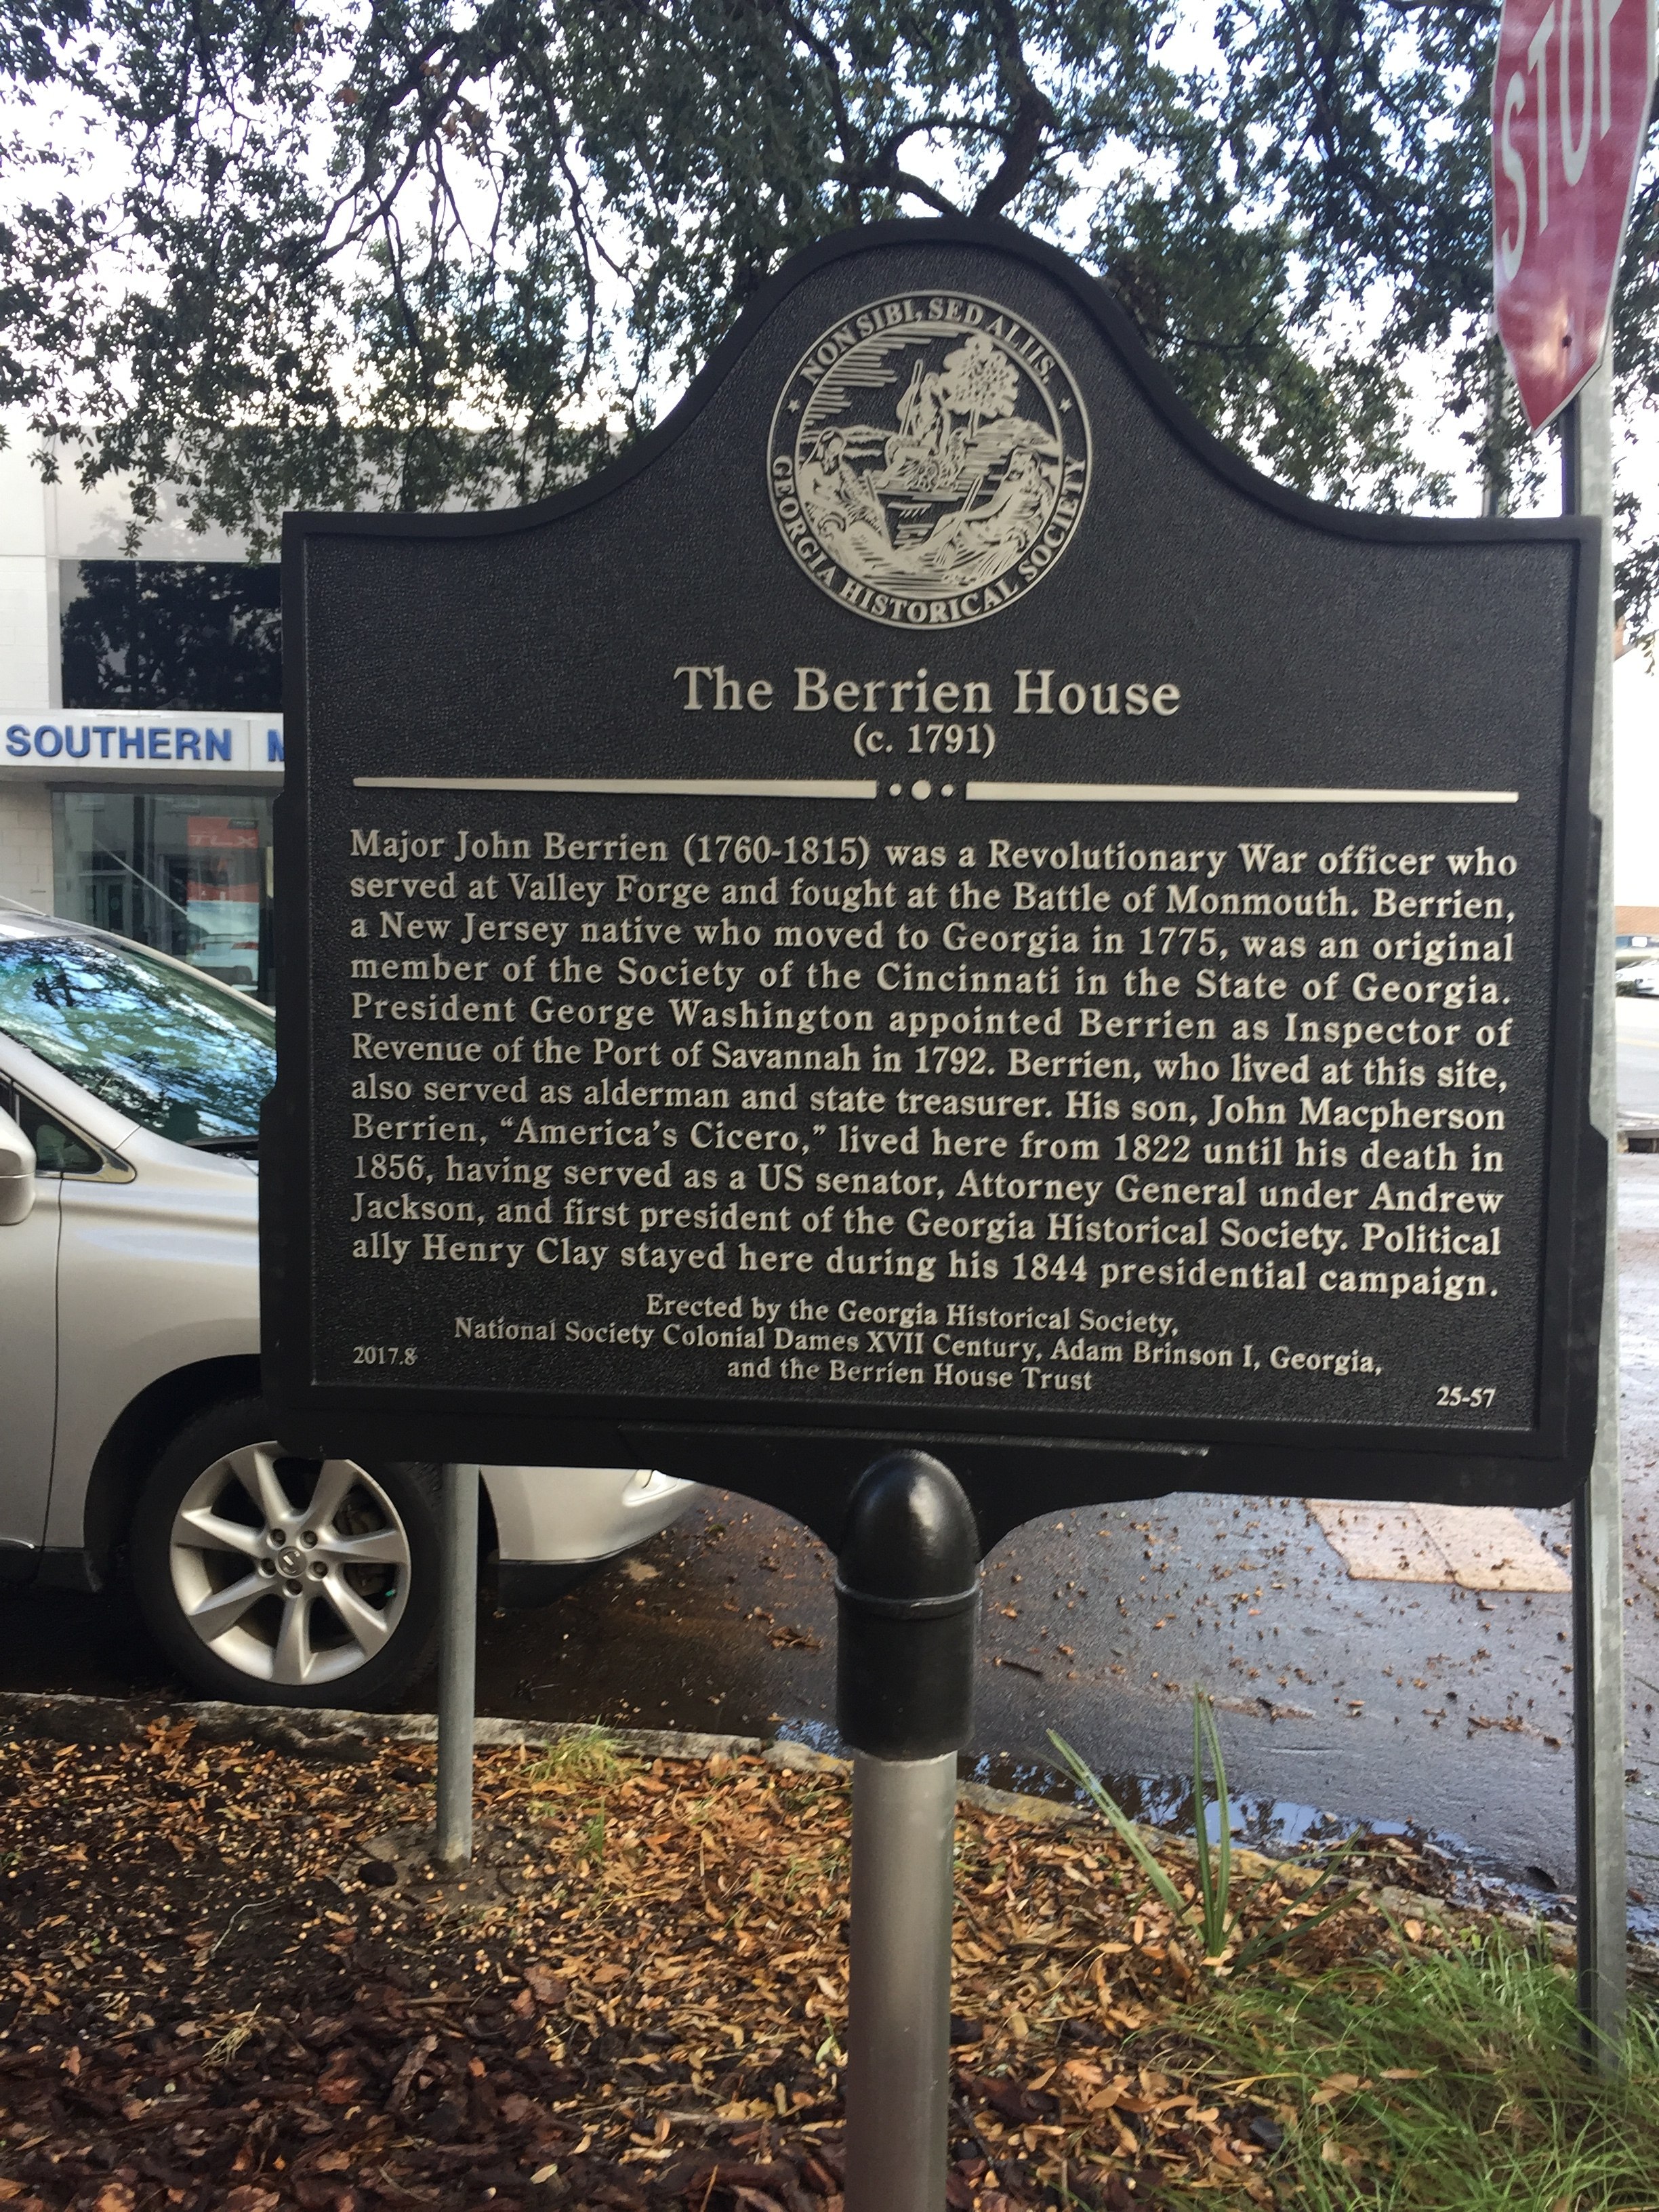 The house has a spiffy new historical marker on Habersham Street.